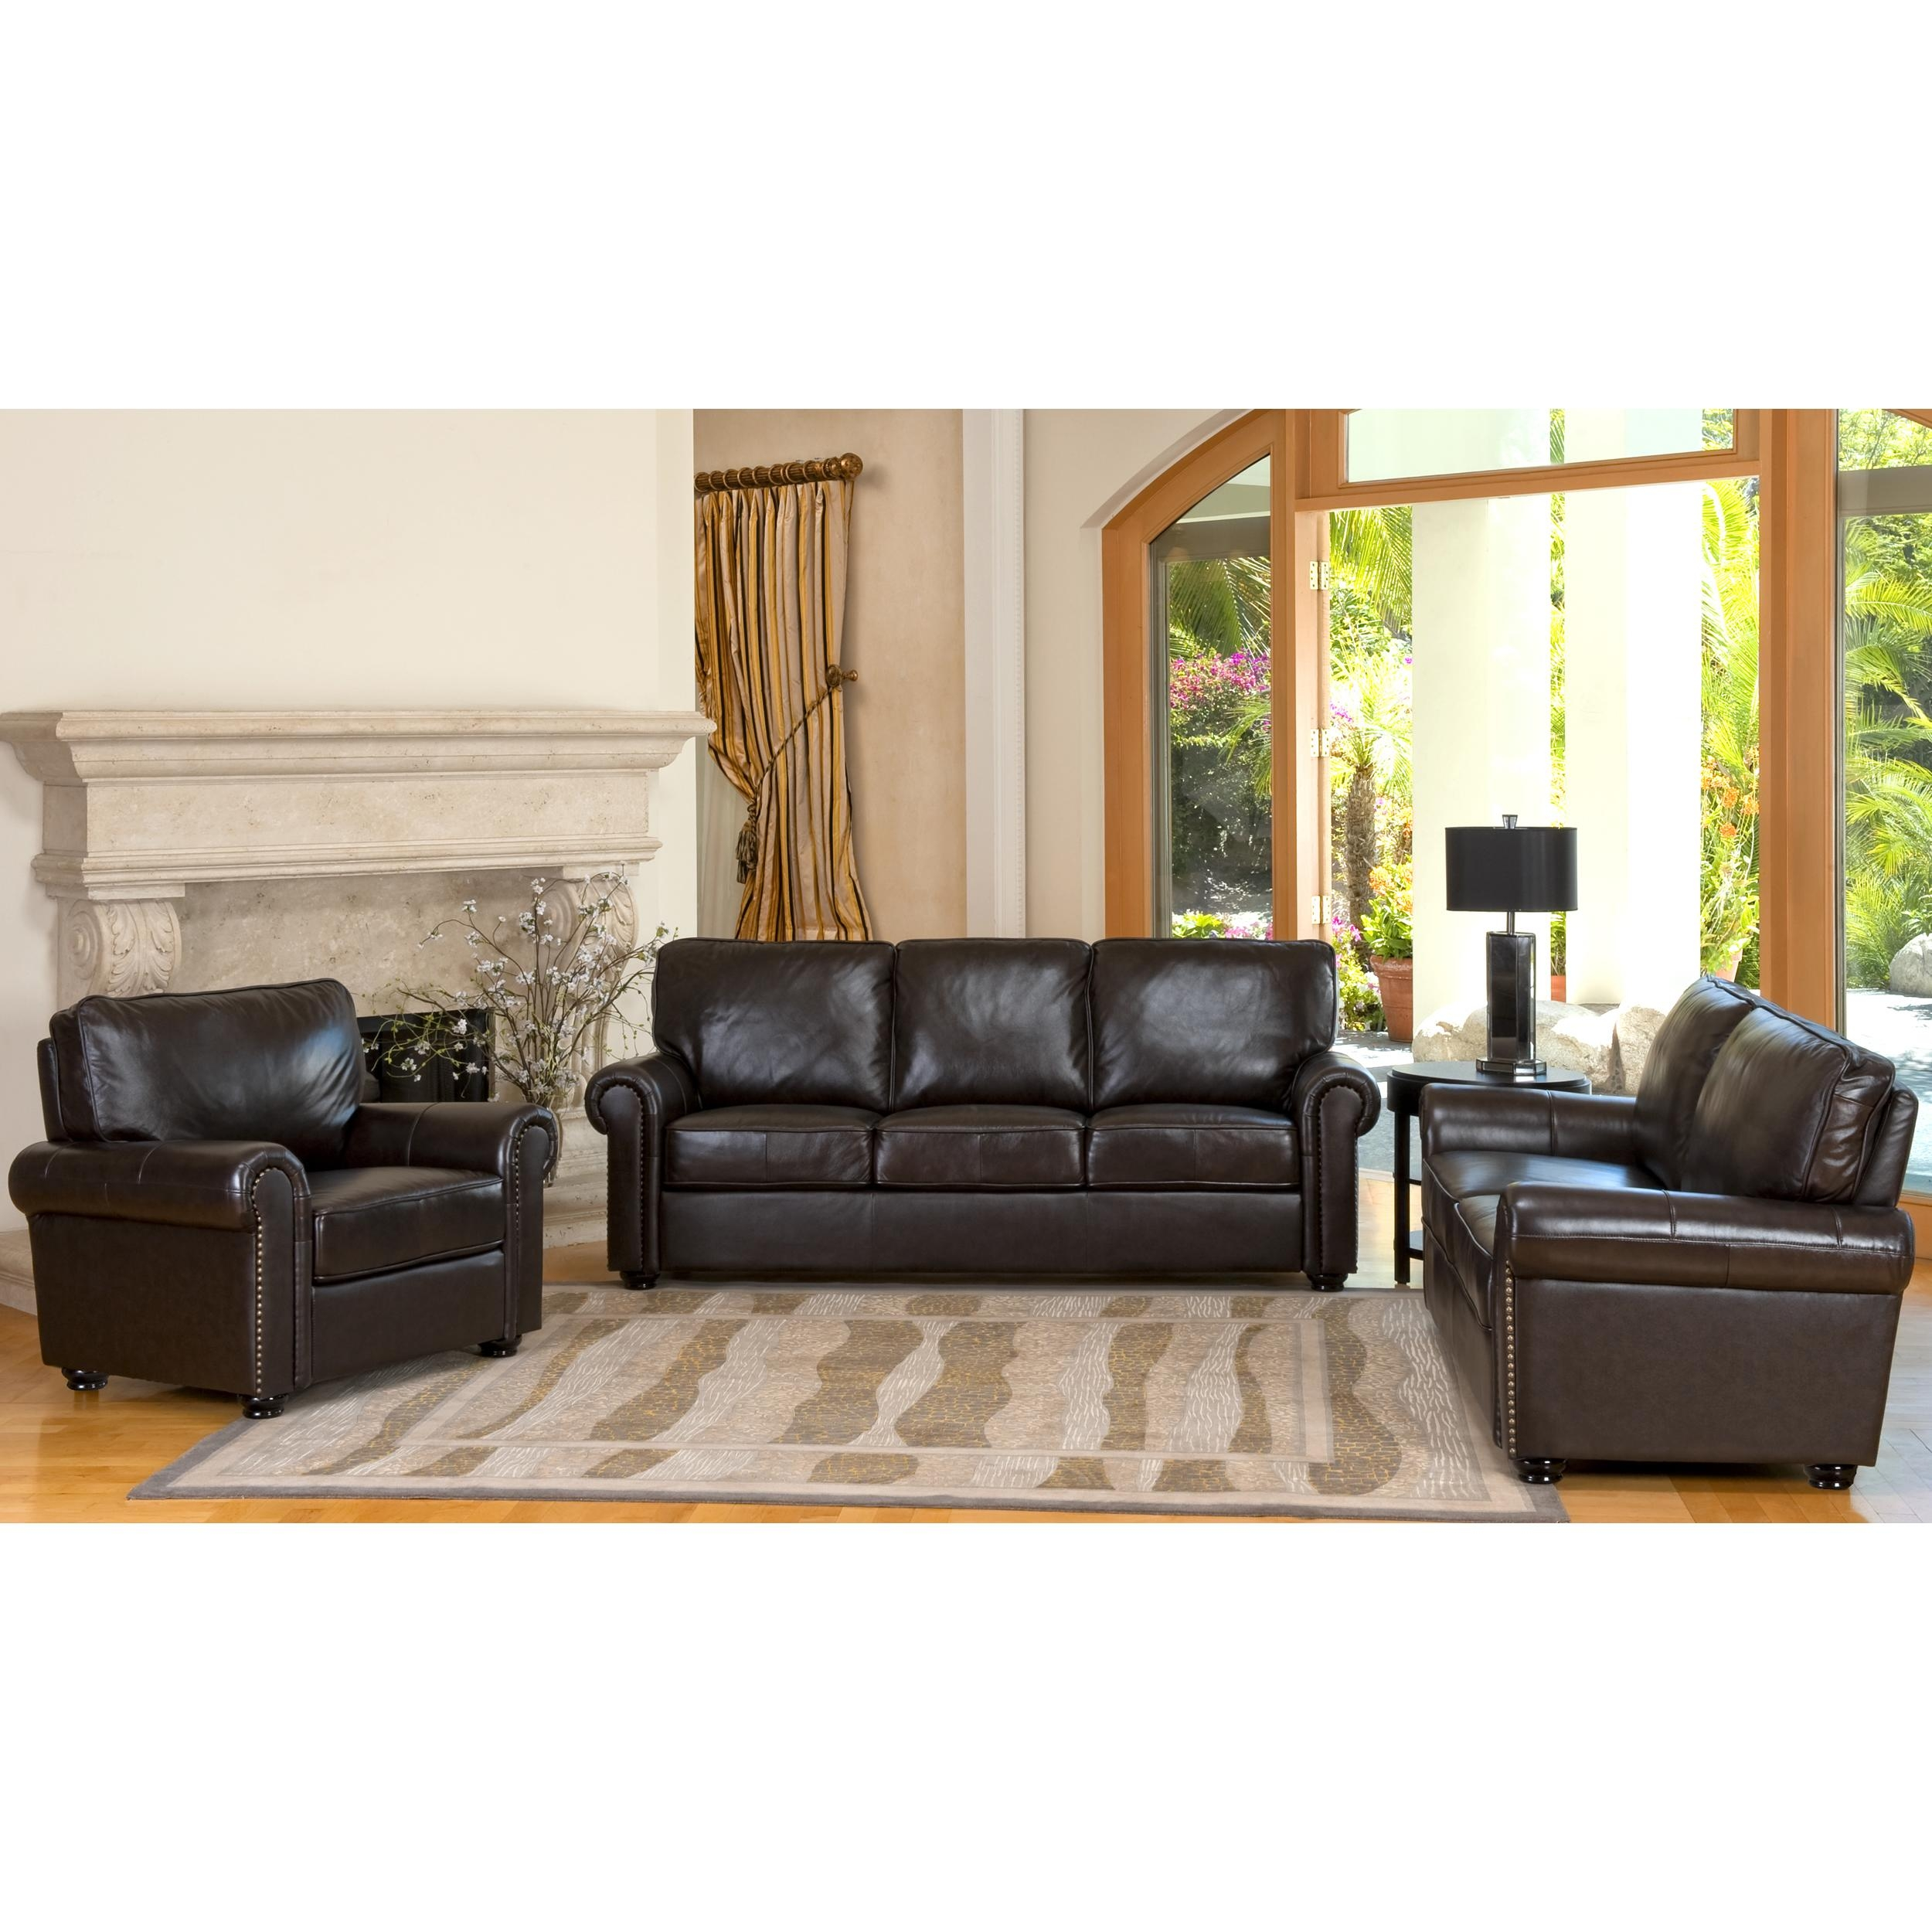 Sofas Center : 42 Excellent Abbyson Living Sofa Photo Concept With Abbyson Sofas (View 6 of 20)